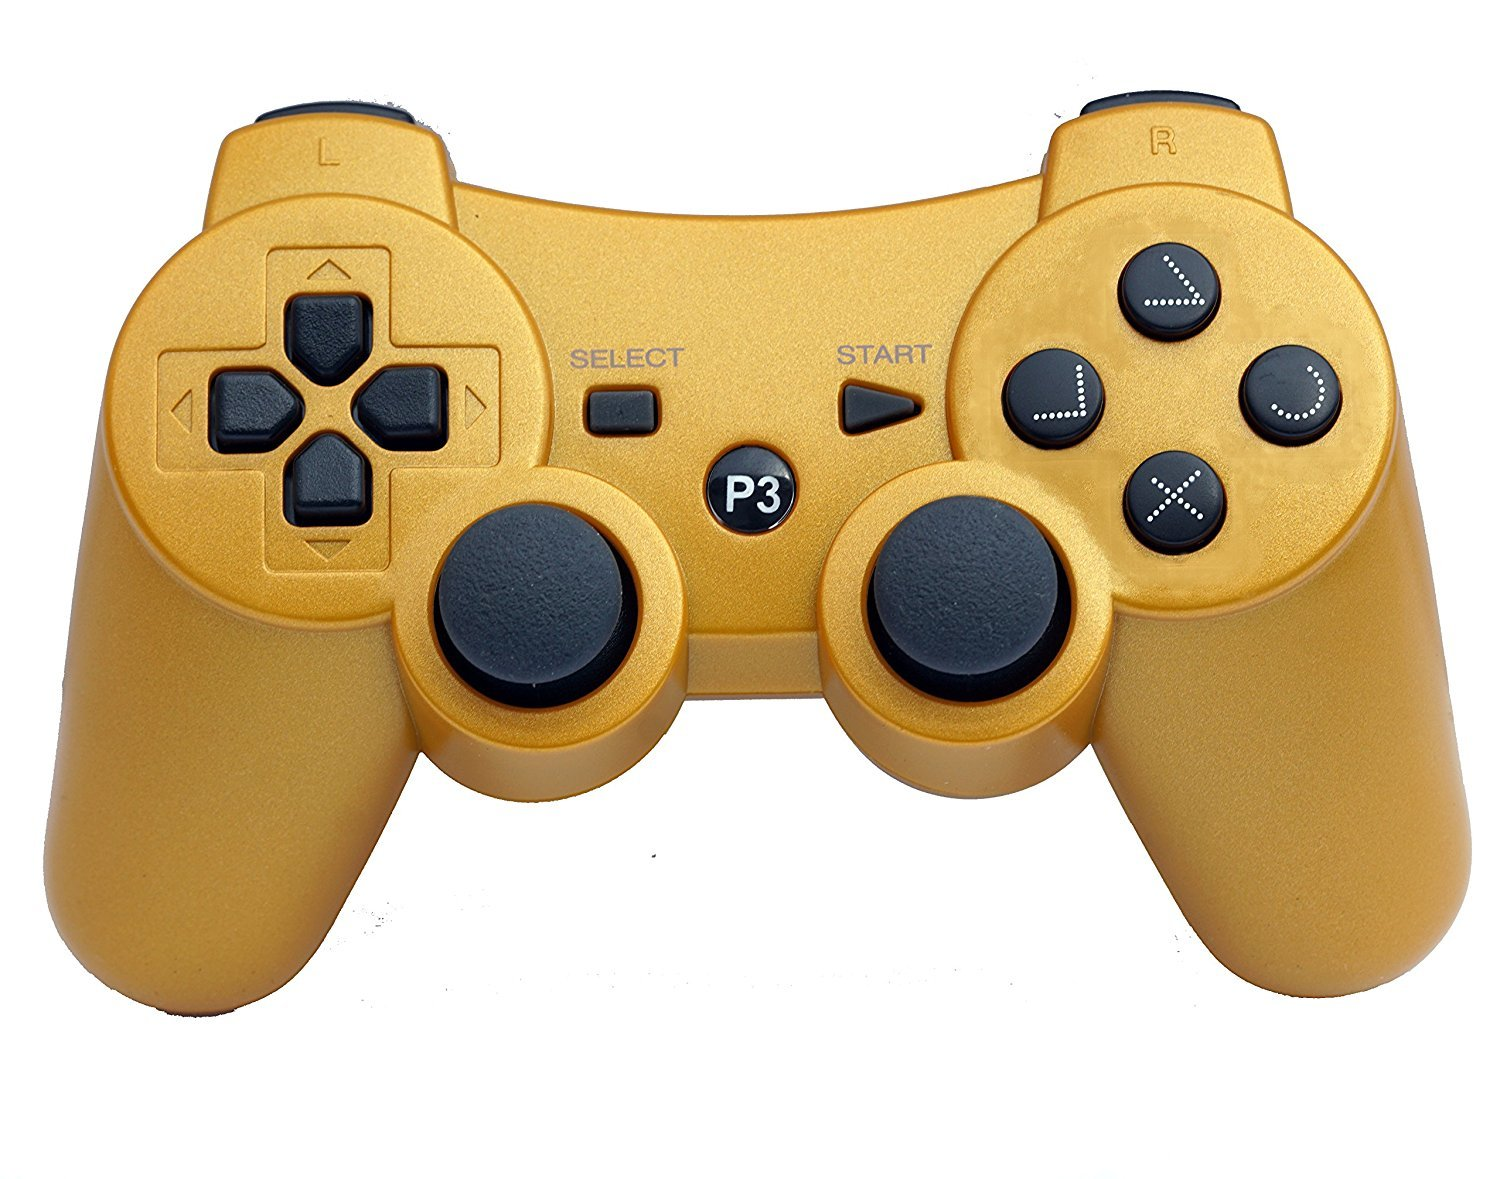 PS3 Wireless Remote Controller GamePad for use Compatible with Playstation 3 PS3 (Gold)